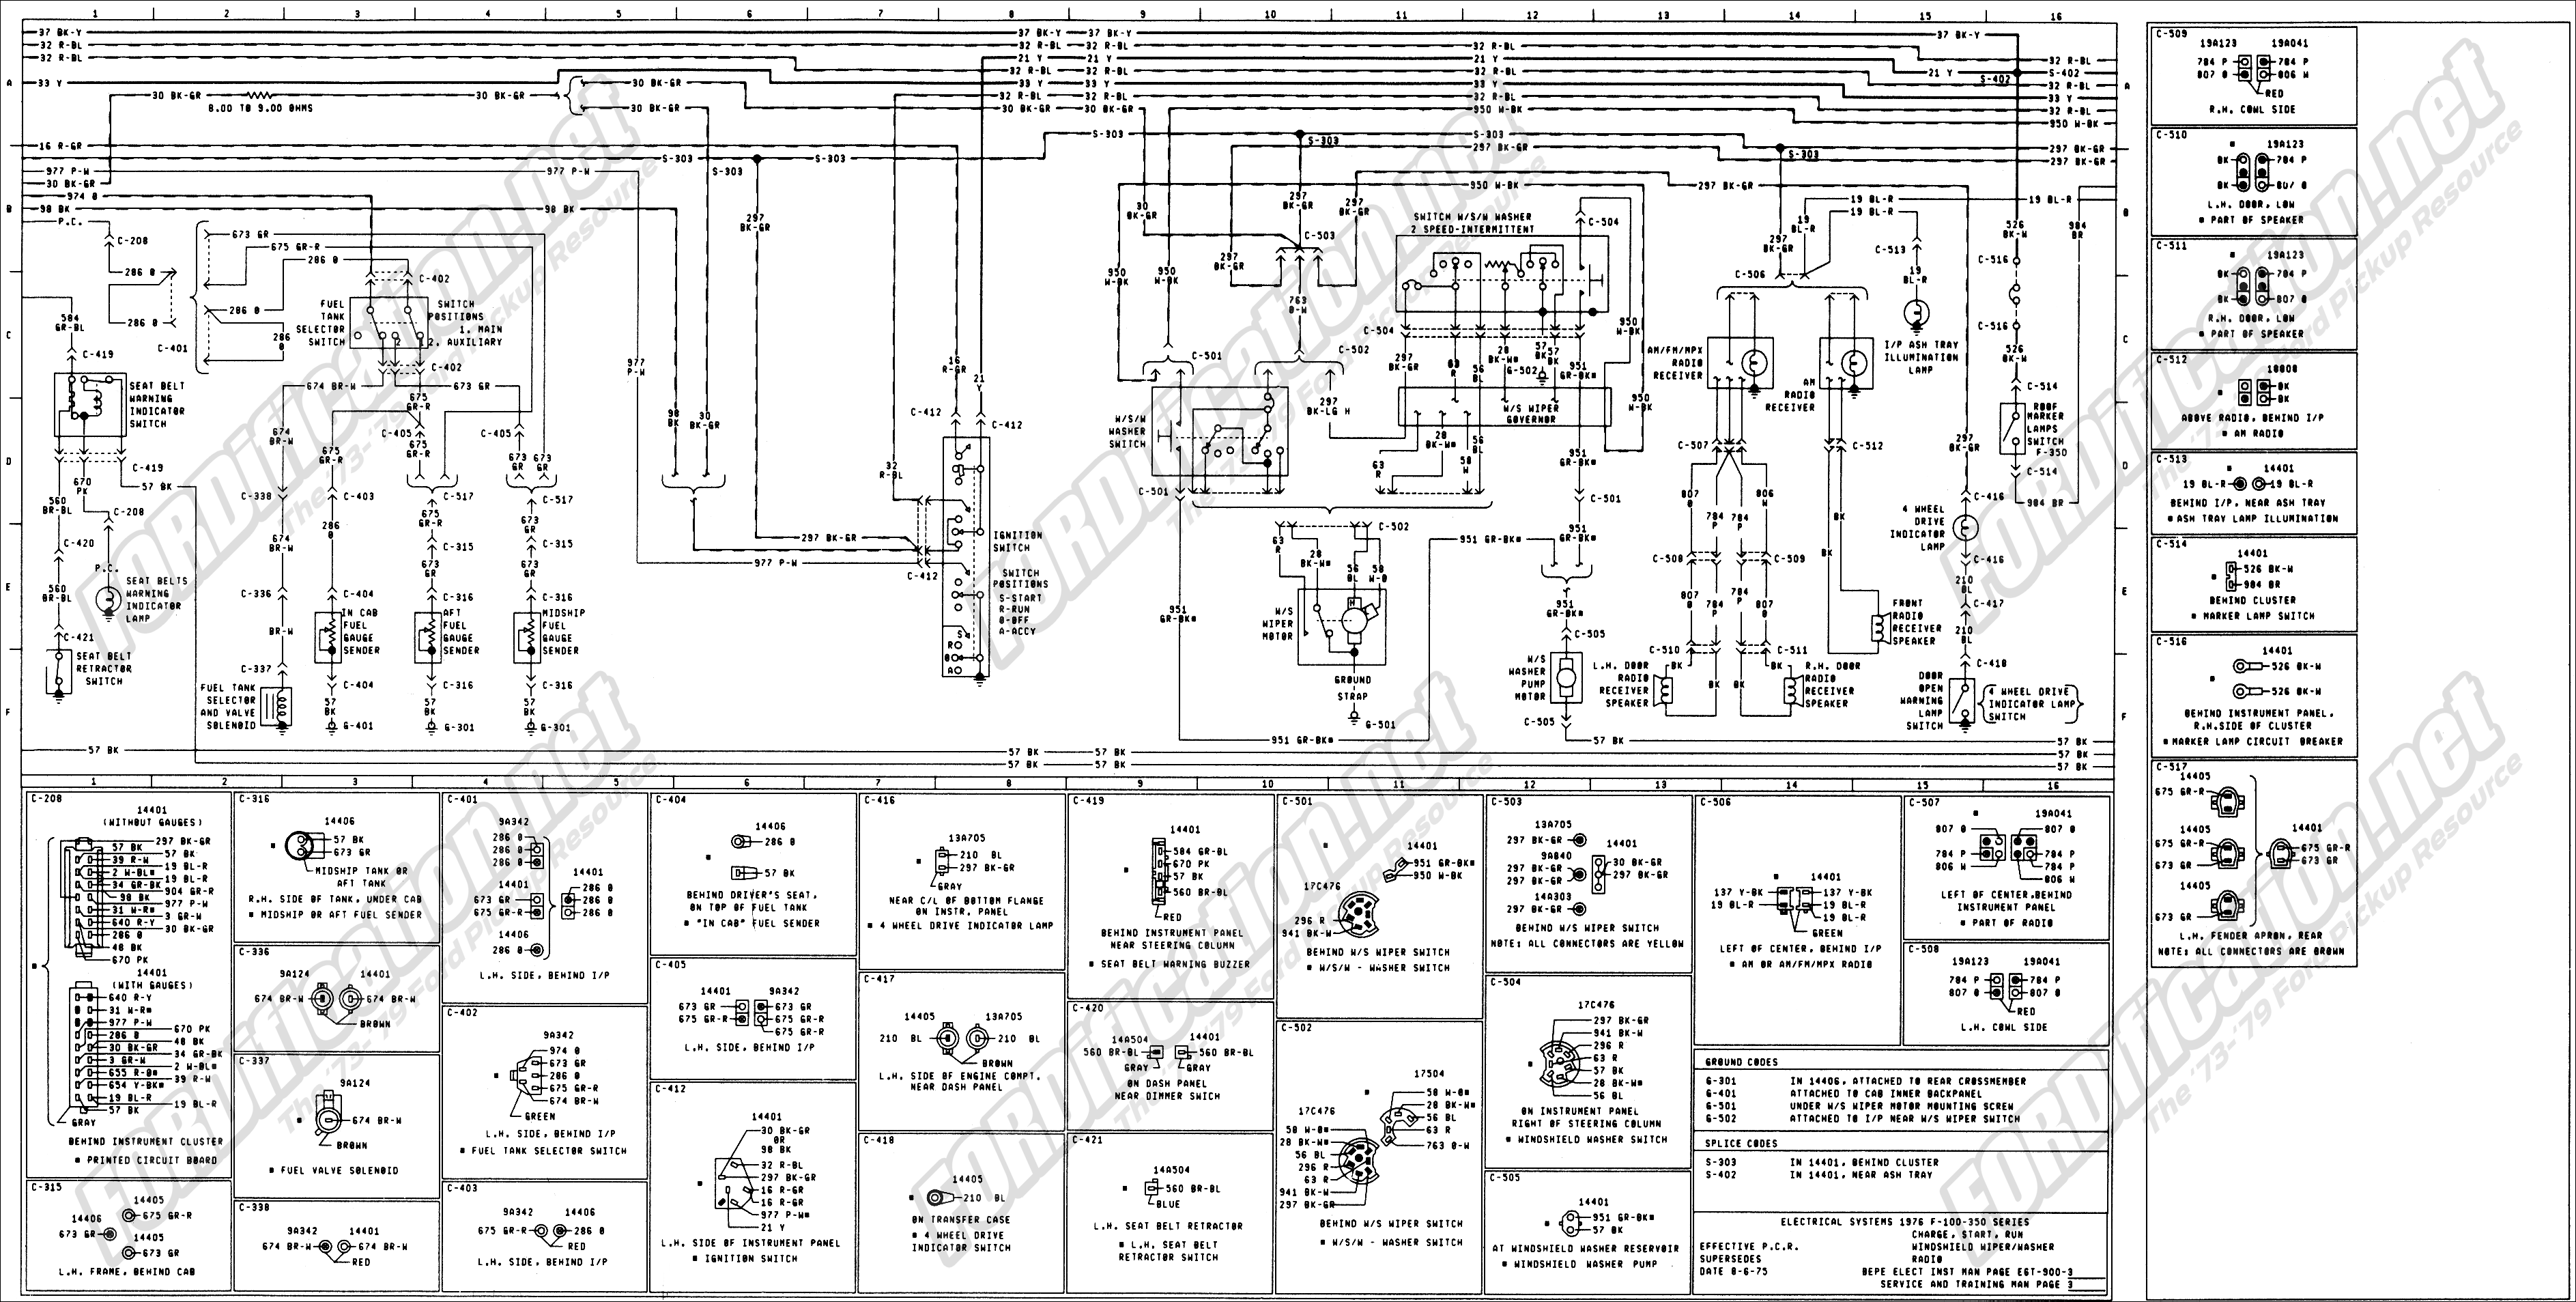 05 Ford Ranger Fuse Diagram Wiring Will Be A Thing 2005 Focus Ignition 1973 1979 Truck Diagrams Schematics 04